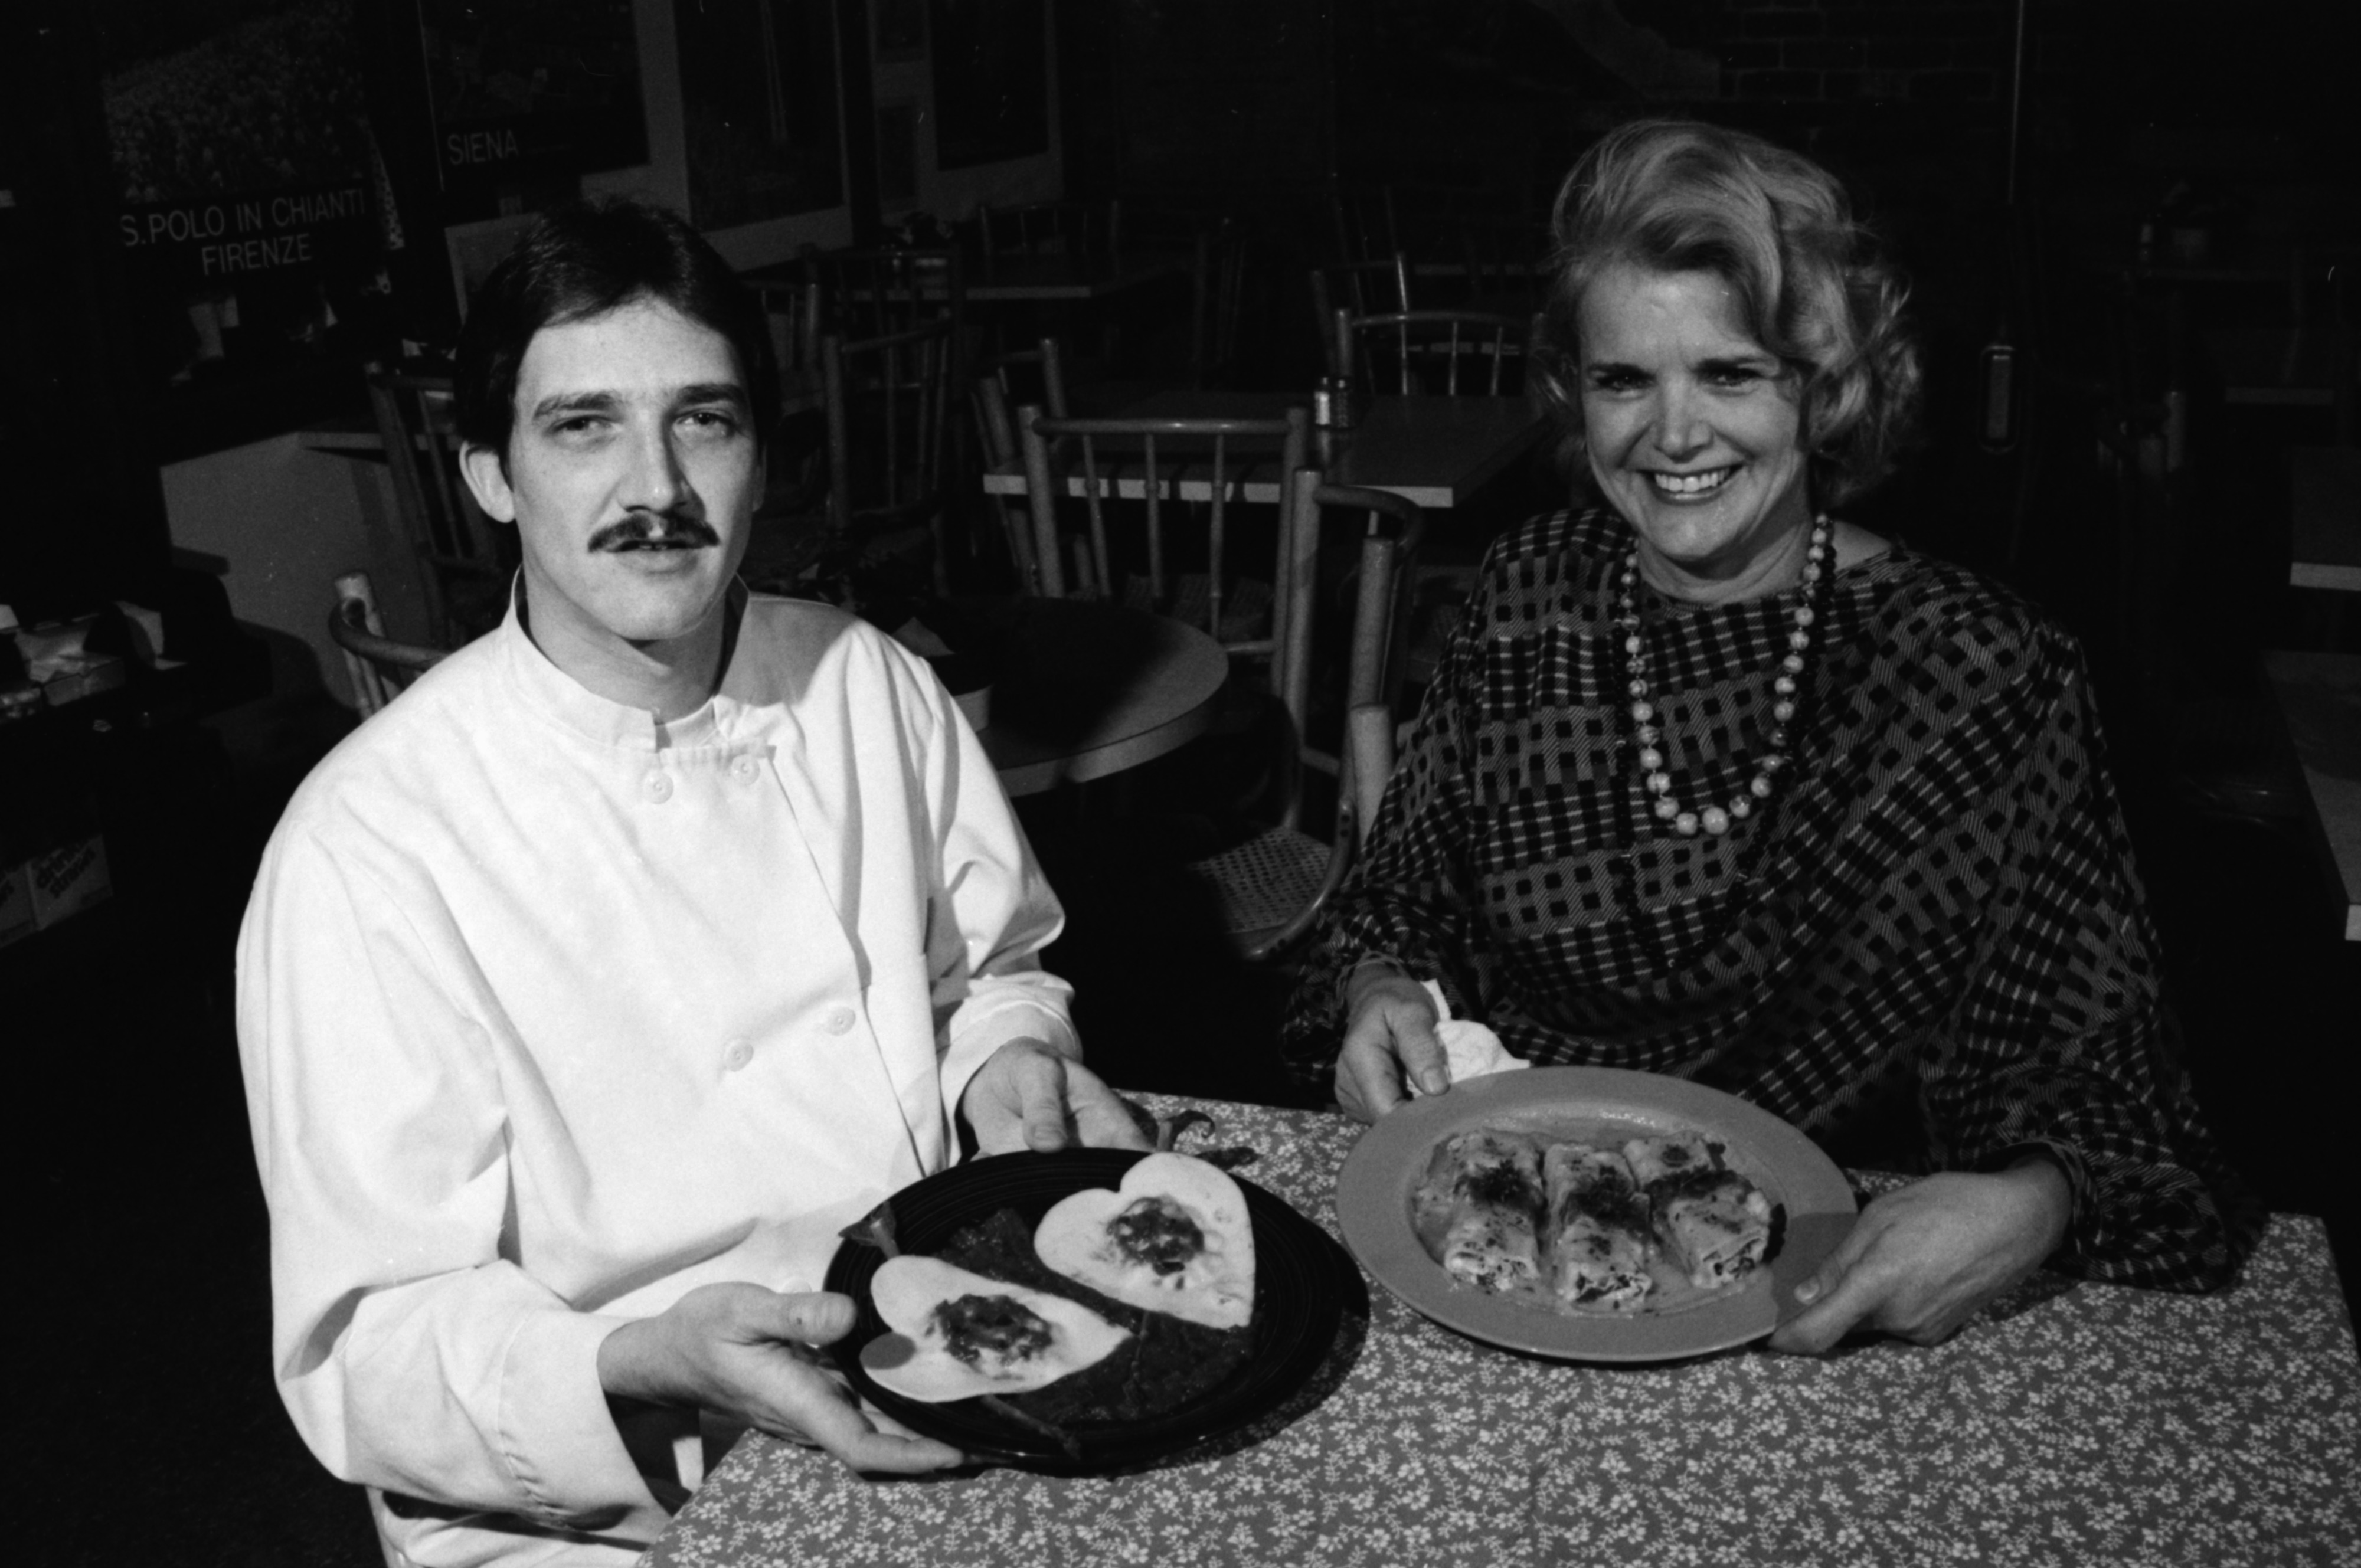 Marguerite Oliver and Chef Ian Cummings, February 1990 image